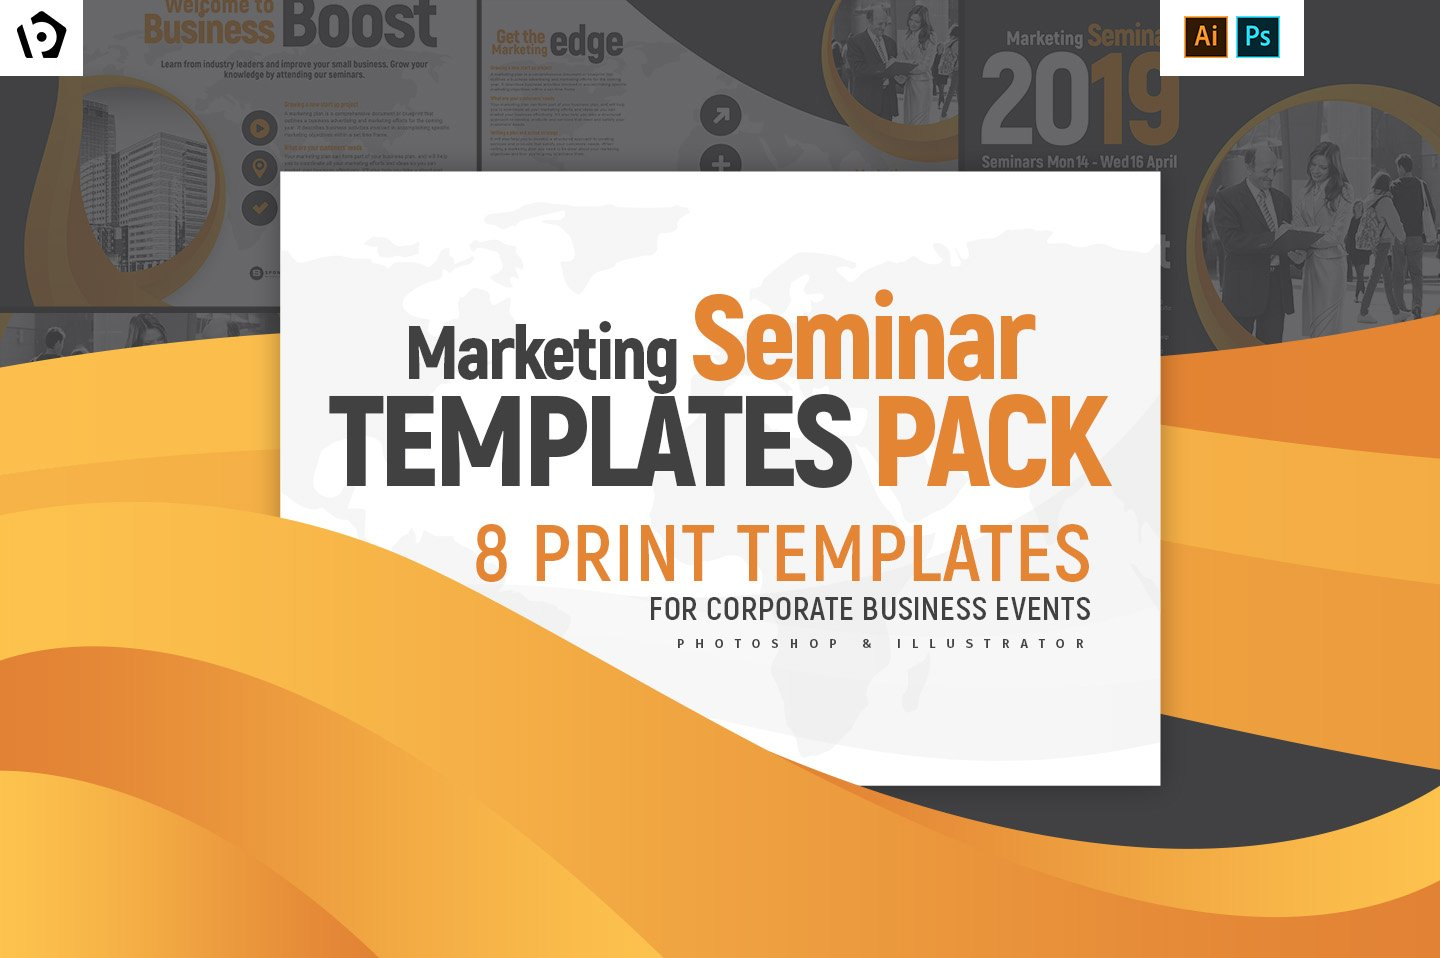 Powerpoint templates pack images templates example free download powerpoint template pack image collections templates example powerpoint templates pack choice image templates example free powerpoint toneelgroepblik Images